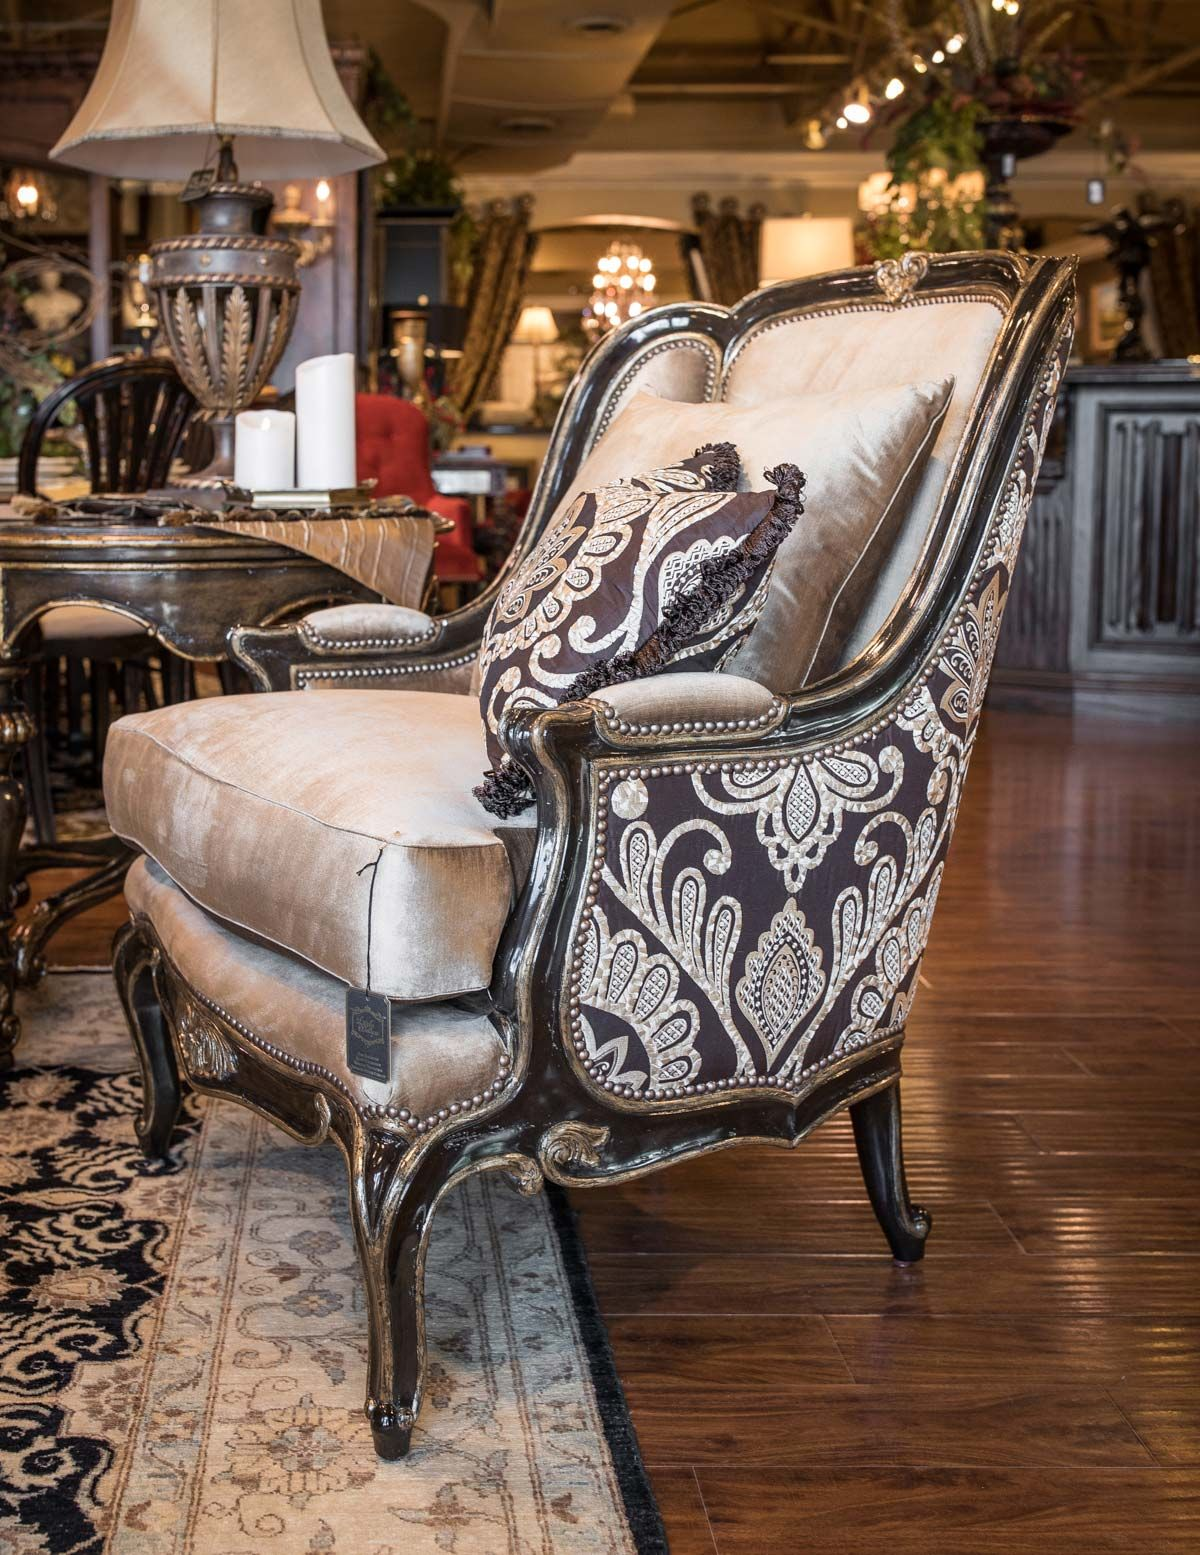 Marge Carson Chairs Indoor Chair Hammock Dealer With Showroom In Clarendon Hills 2018 Home We Offer Wide Selection Of Furniture Our 10 000 Sqft Located Illinois